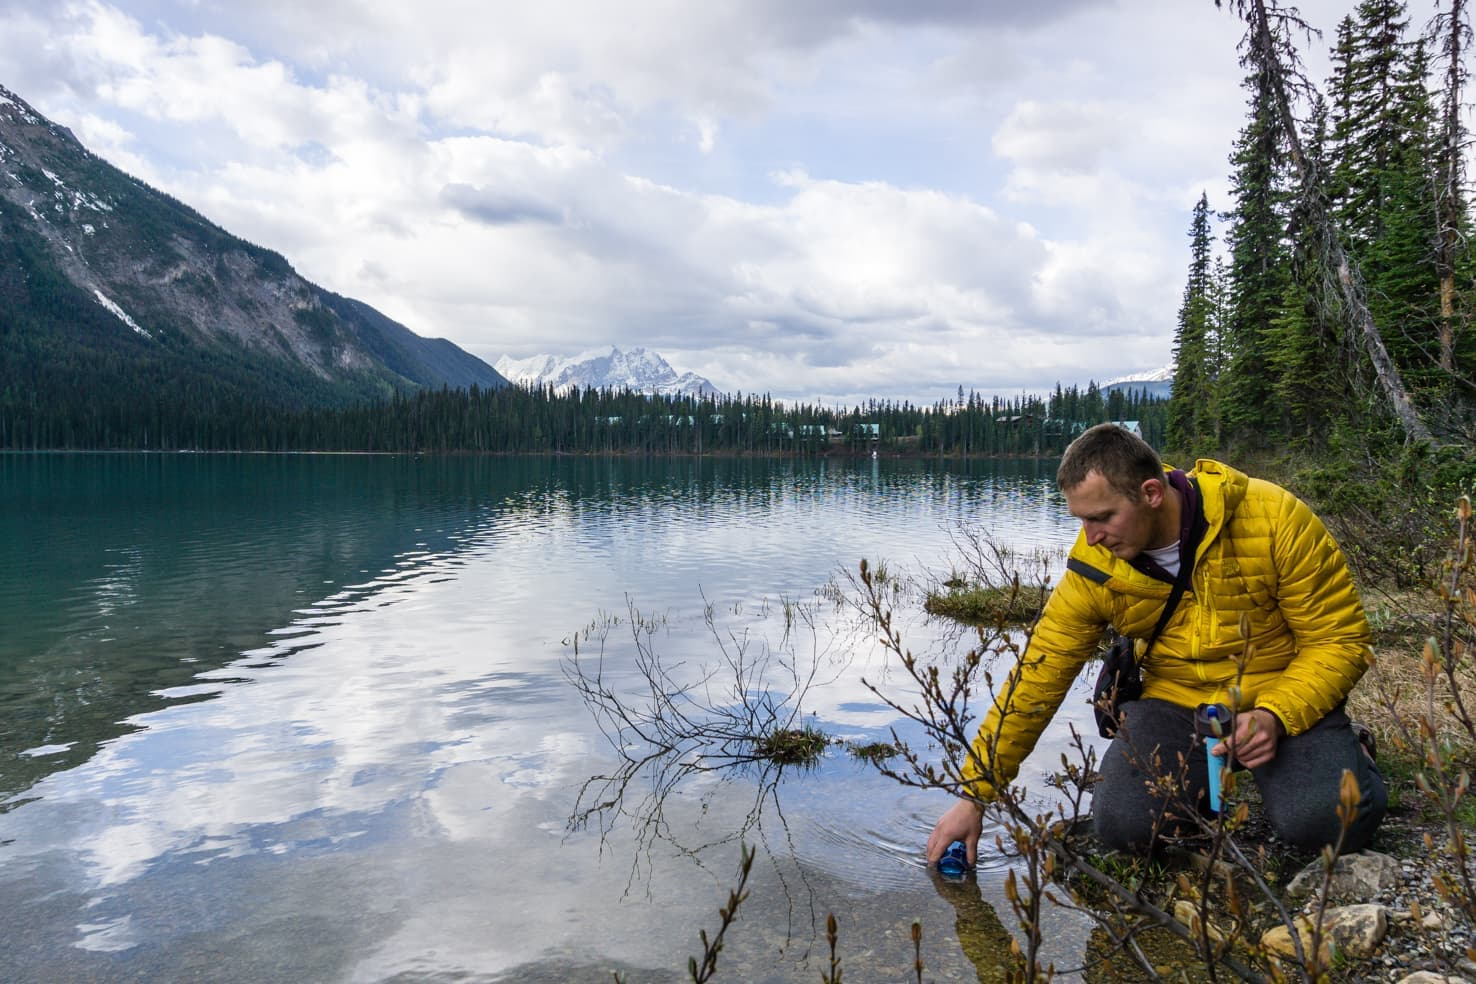 Hiking packing list for summer in the mountains - Emerald Lake in Yoho National Park, Canada